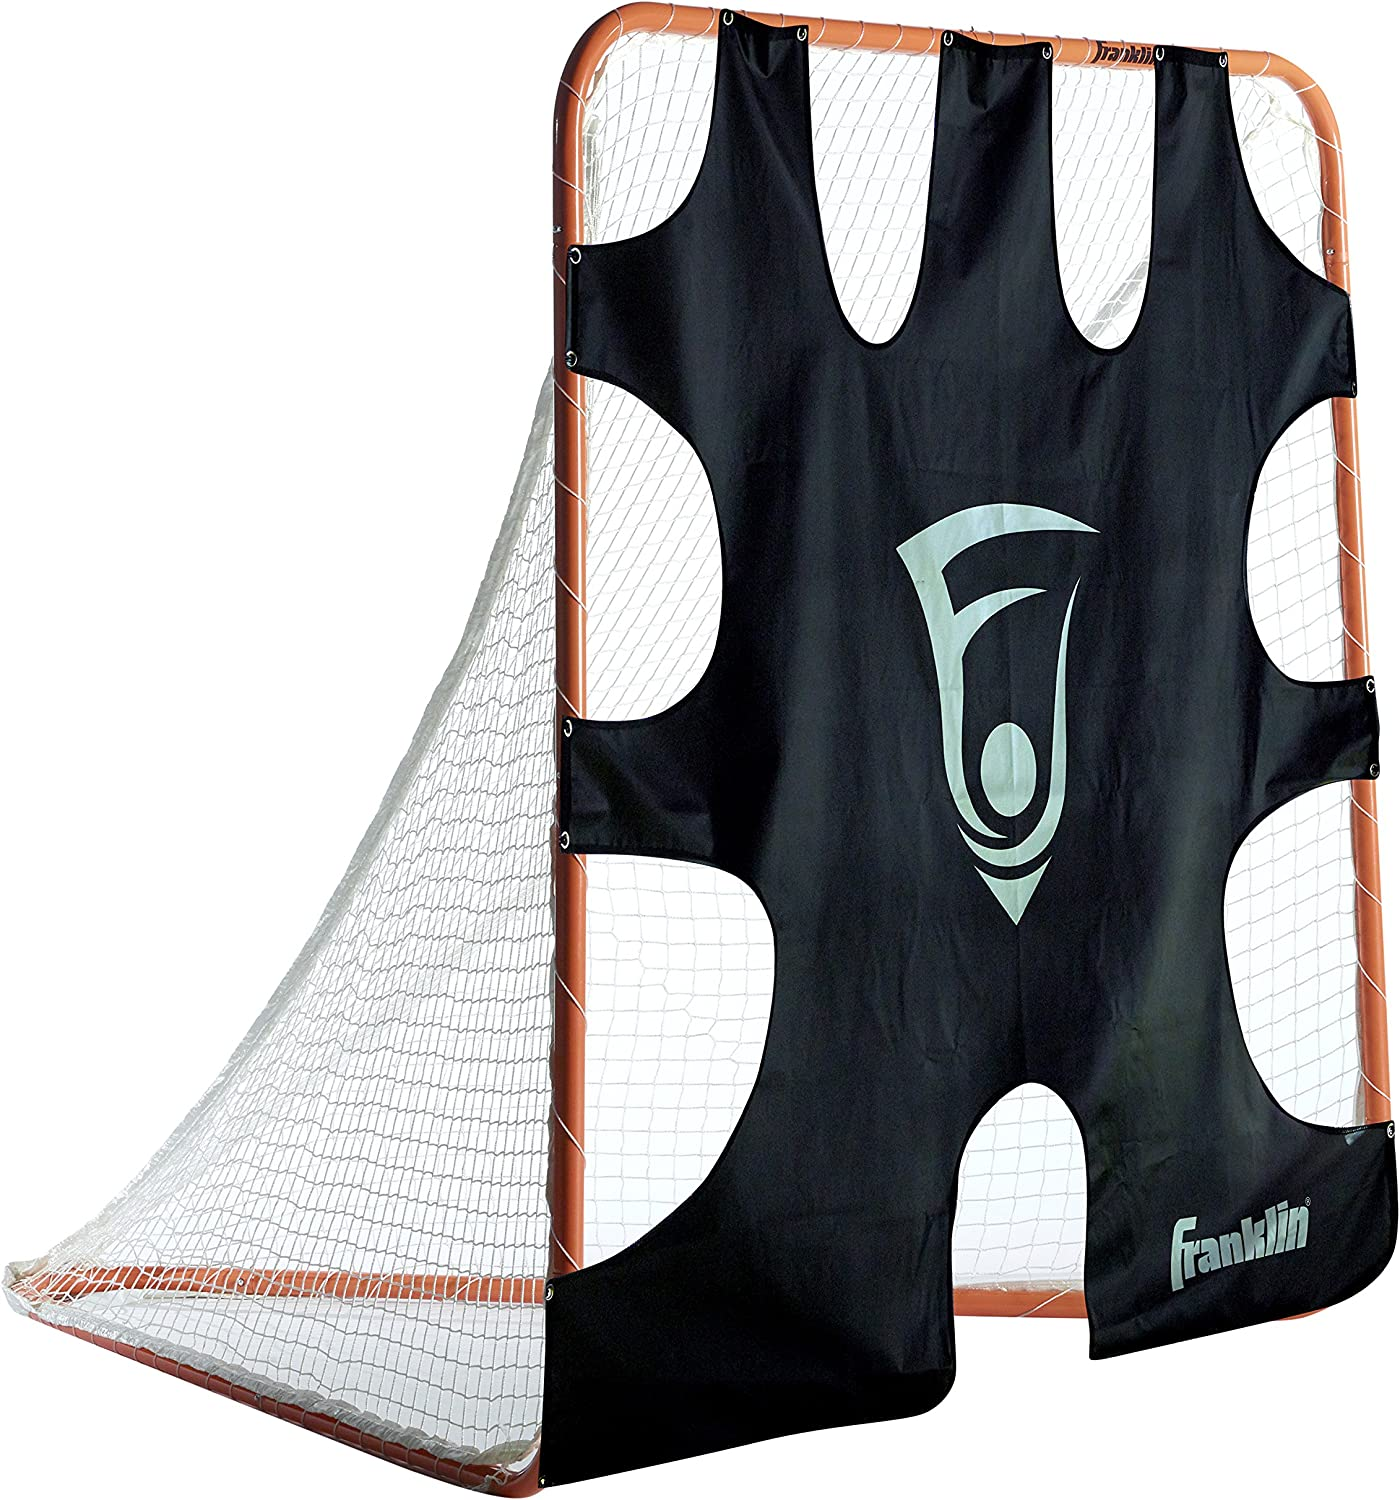 Franklin Sports Lacrosse Goal Shooting Target - Lacrosse Training Equipment - Corner Targets for Shooting Practice : Sports & Outdoors